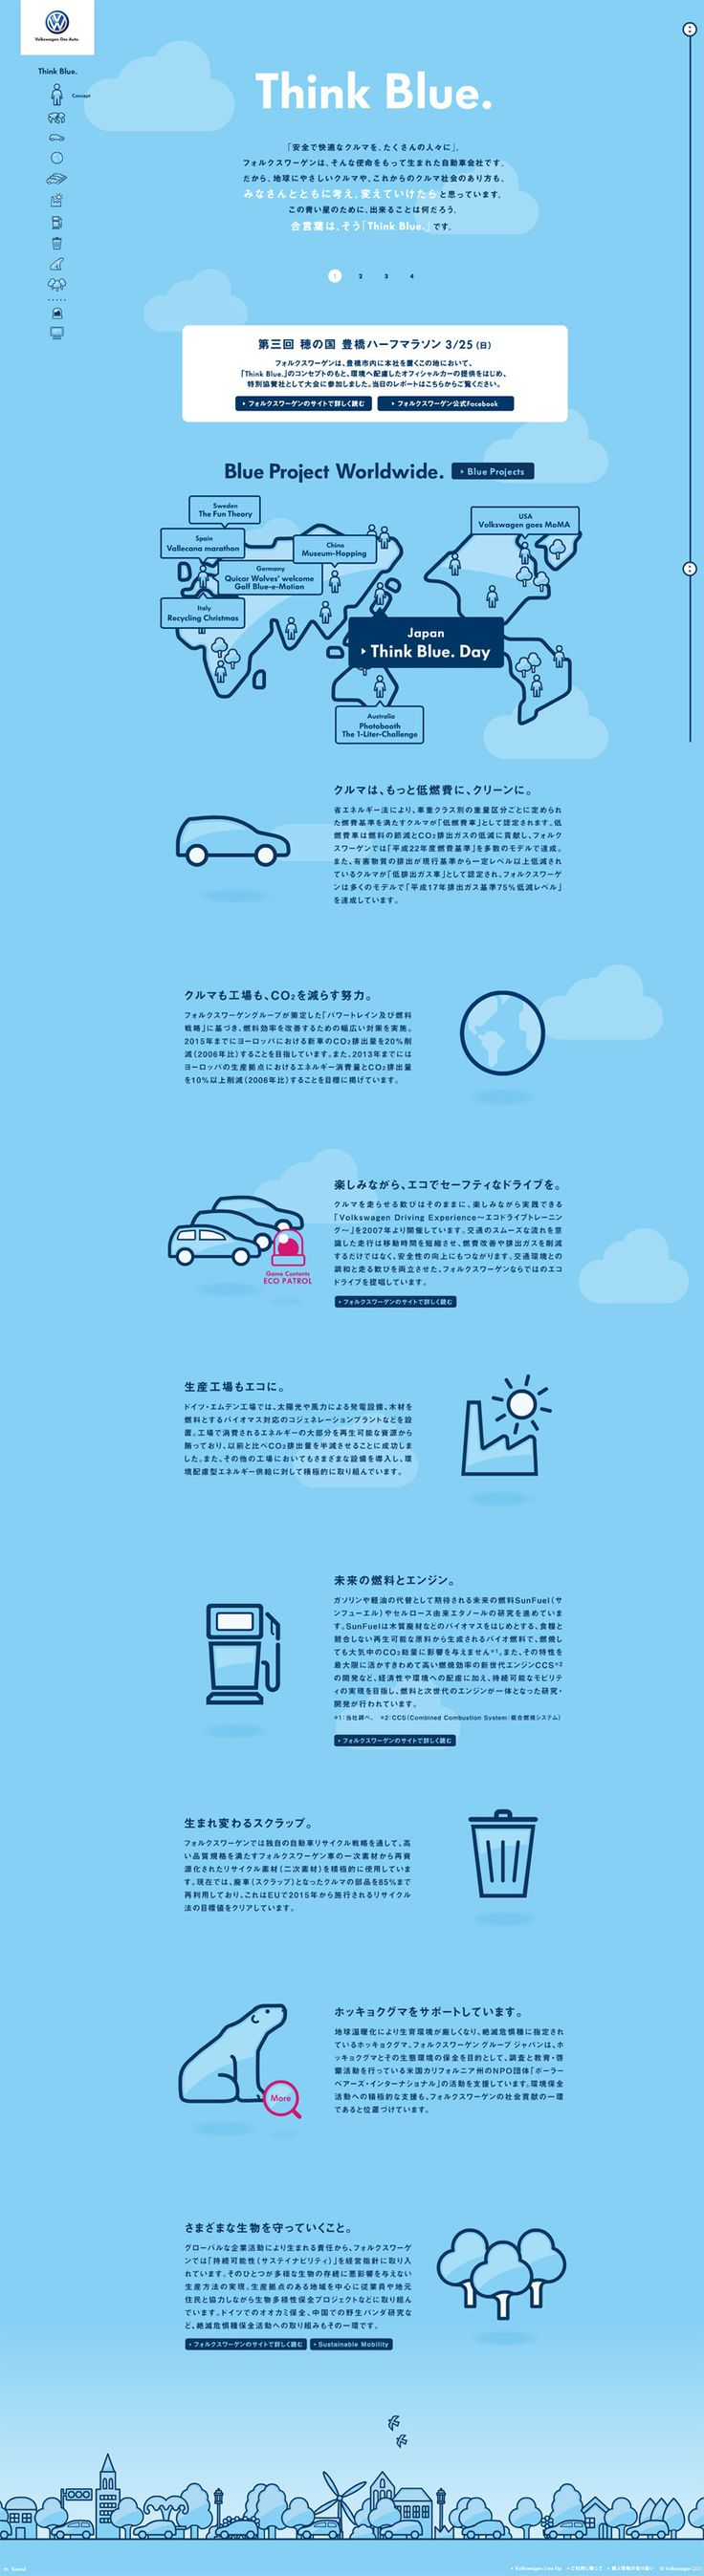 Unique Web Design, Volkswagen Japan #WebDesign #Design (http://www.pinterest.com/aldenchong/)